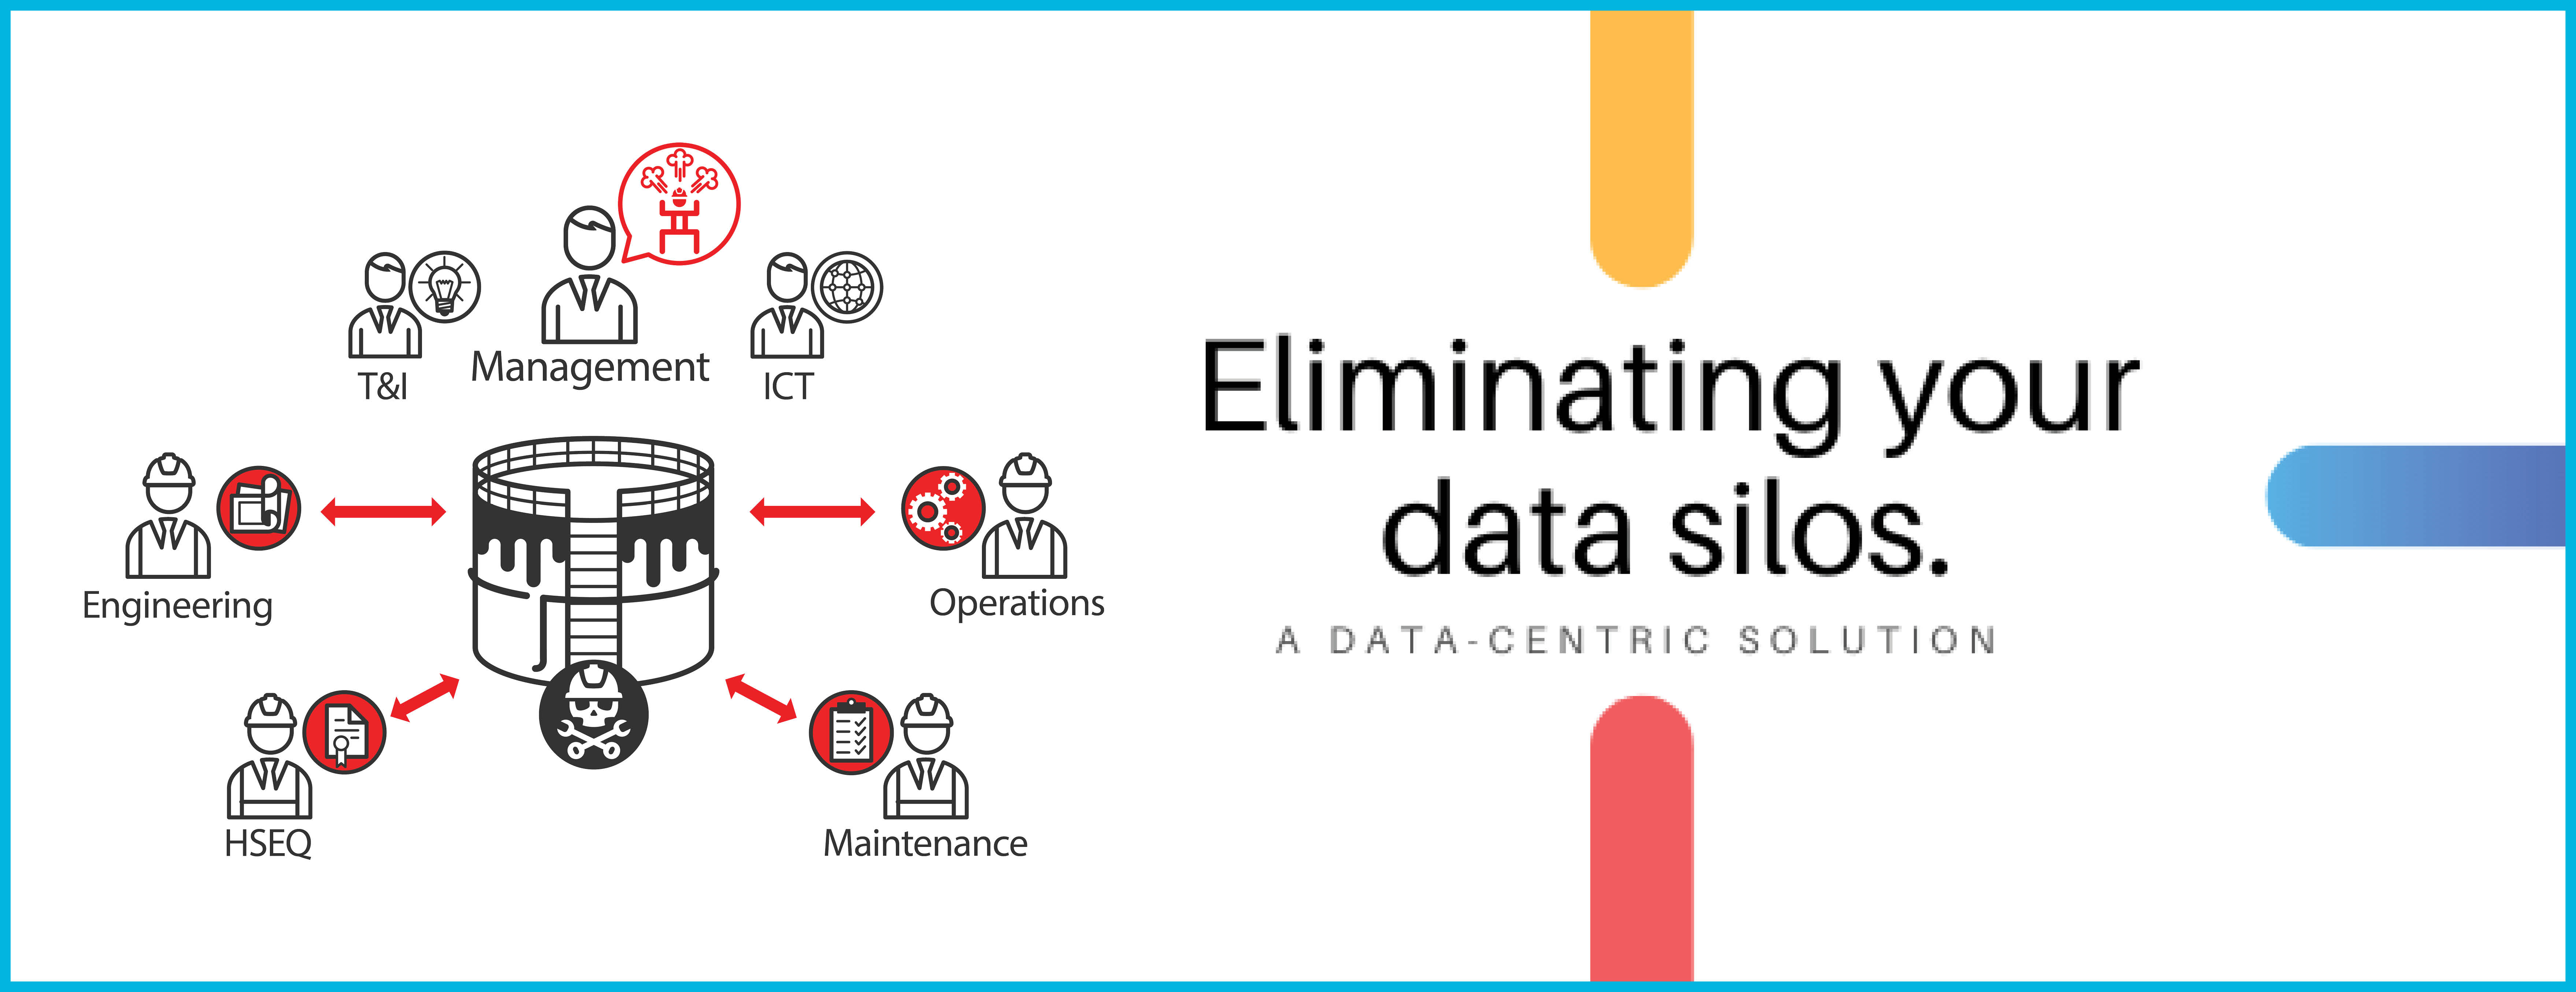 How to eliminate data silos in the process industry